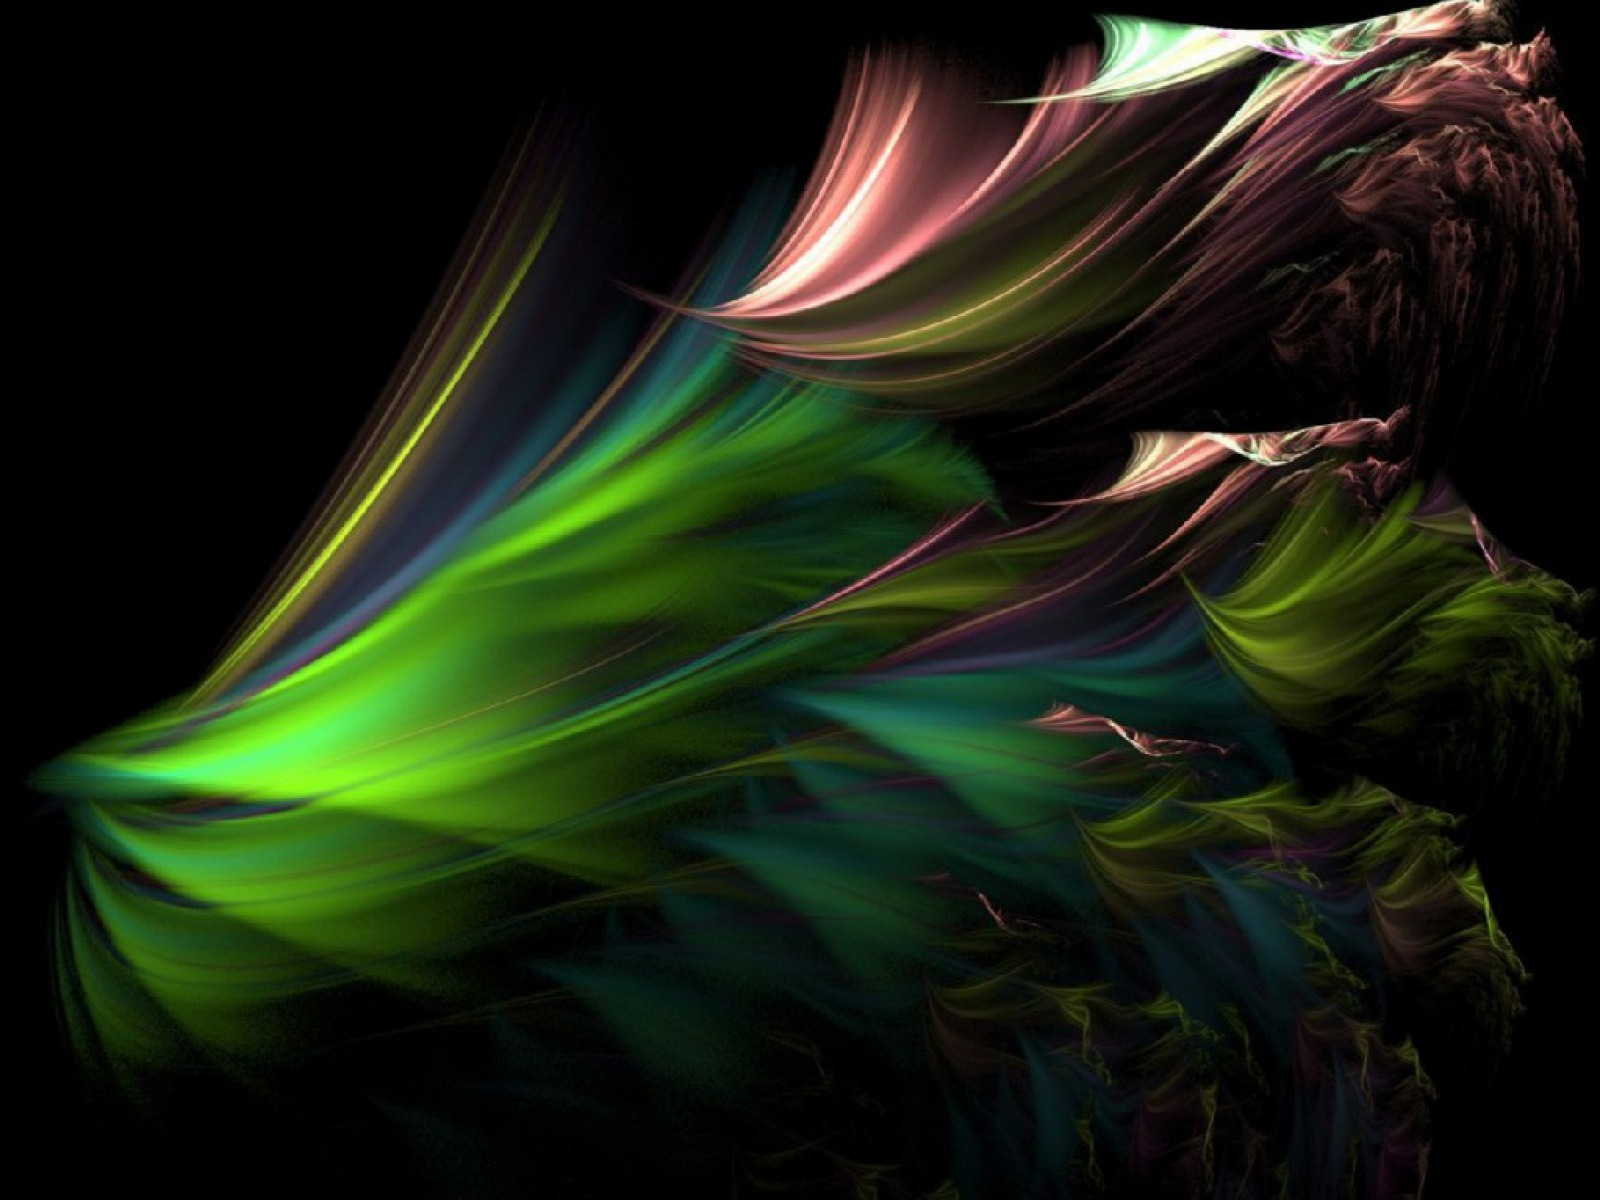 Fractal Peacock Feathers wallpapers Fractal Peacock 1600x1200